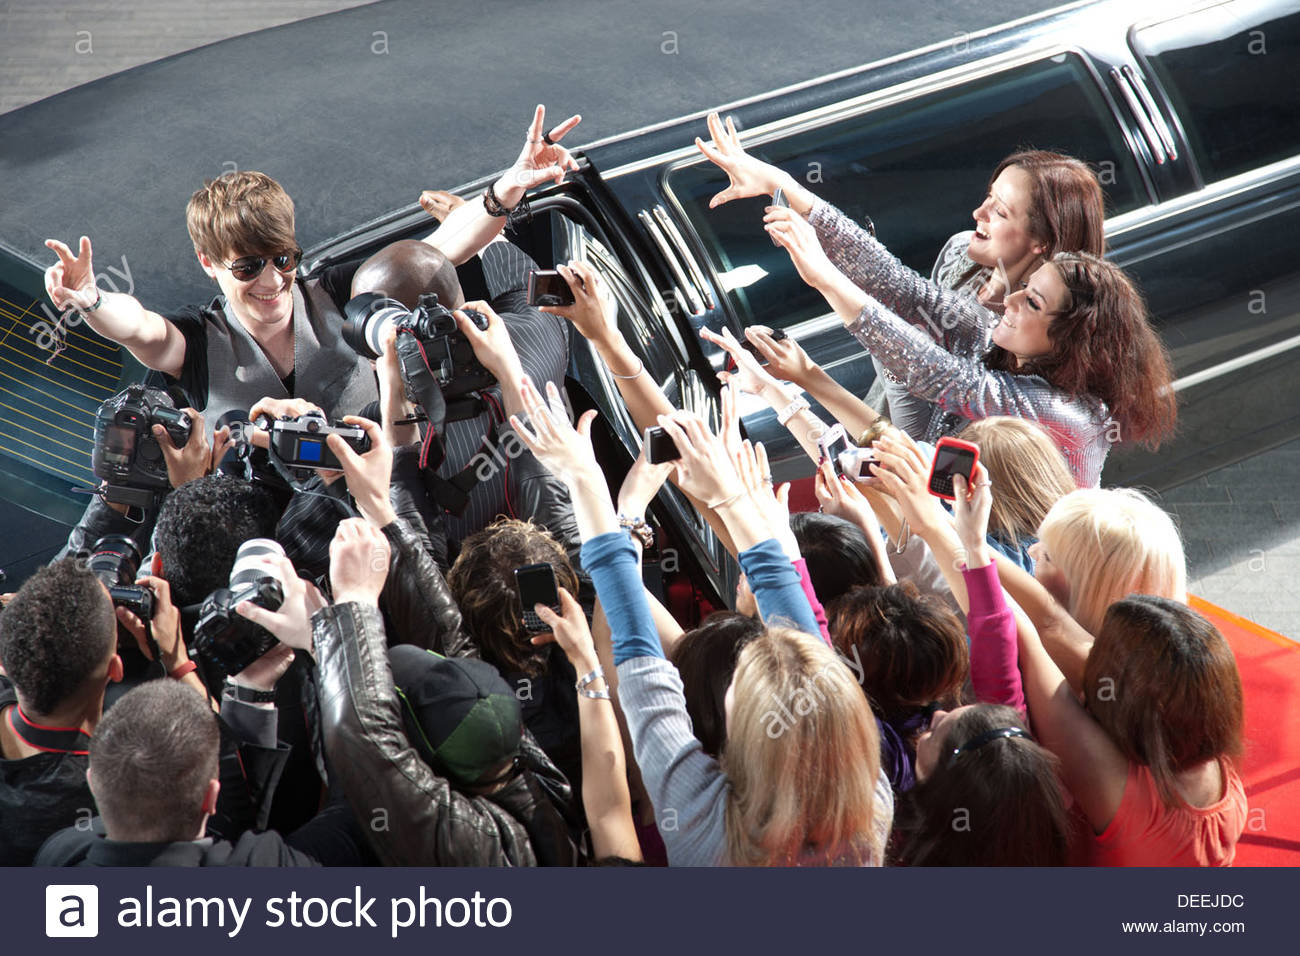 Celebrity emerging from limo towards paparazzi Stock Photo